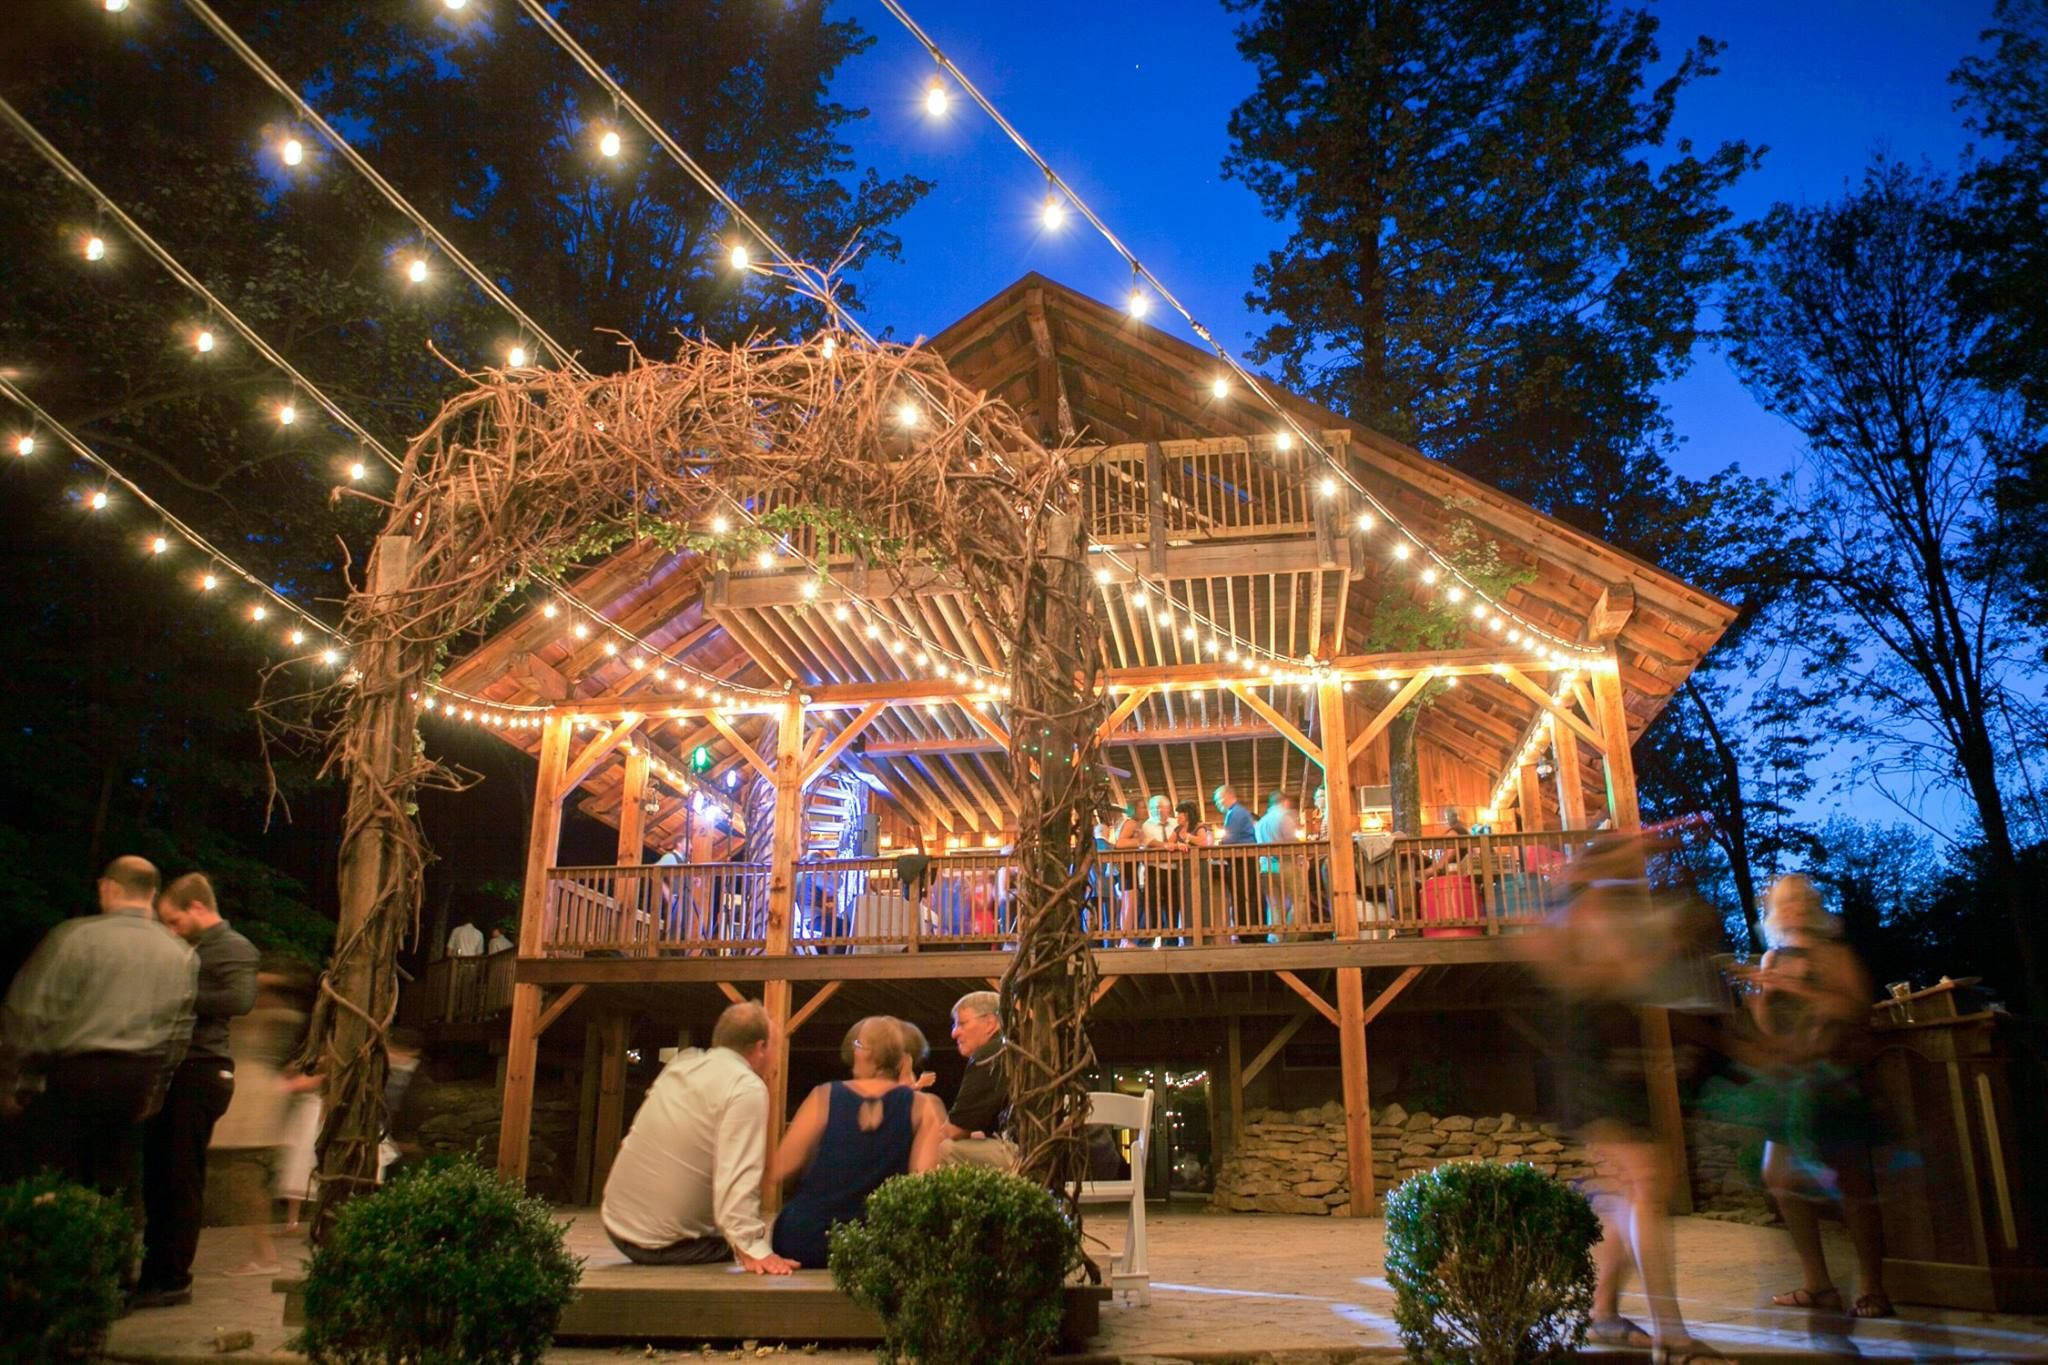 Exterior Of The Grand Barn At The Mohicans Treehouse Honeymoon Suites Barn Wedding Rustic Barn Wedding Treehouse Wedding